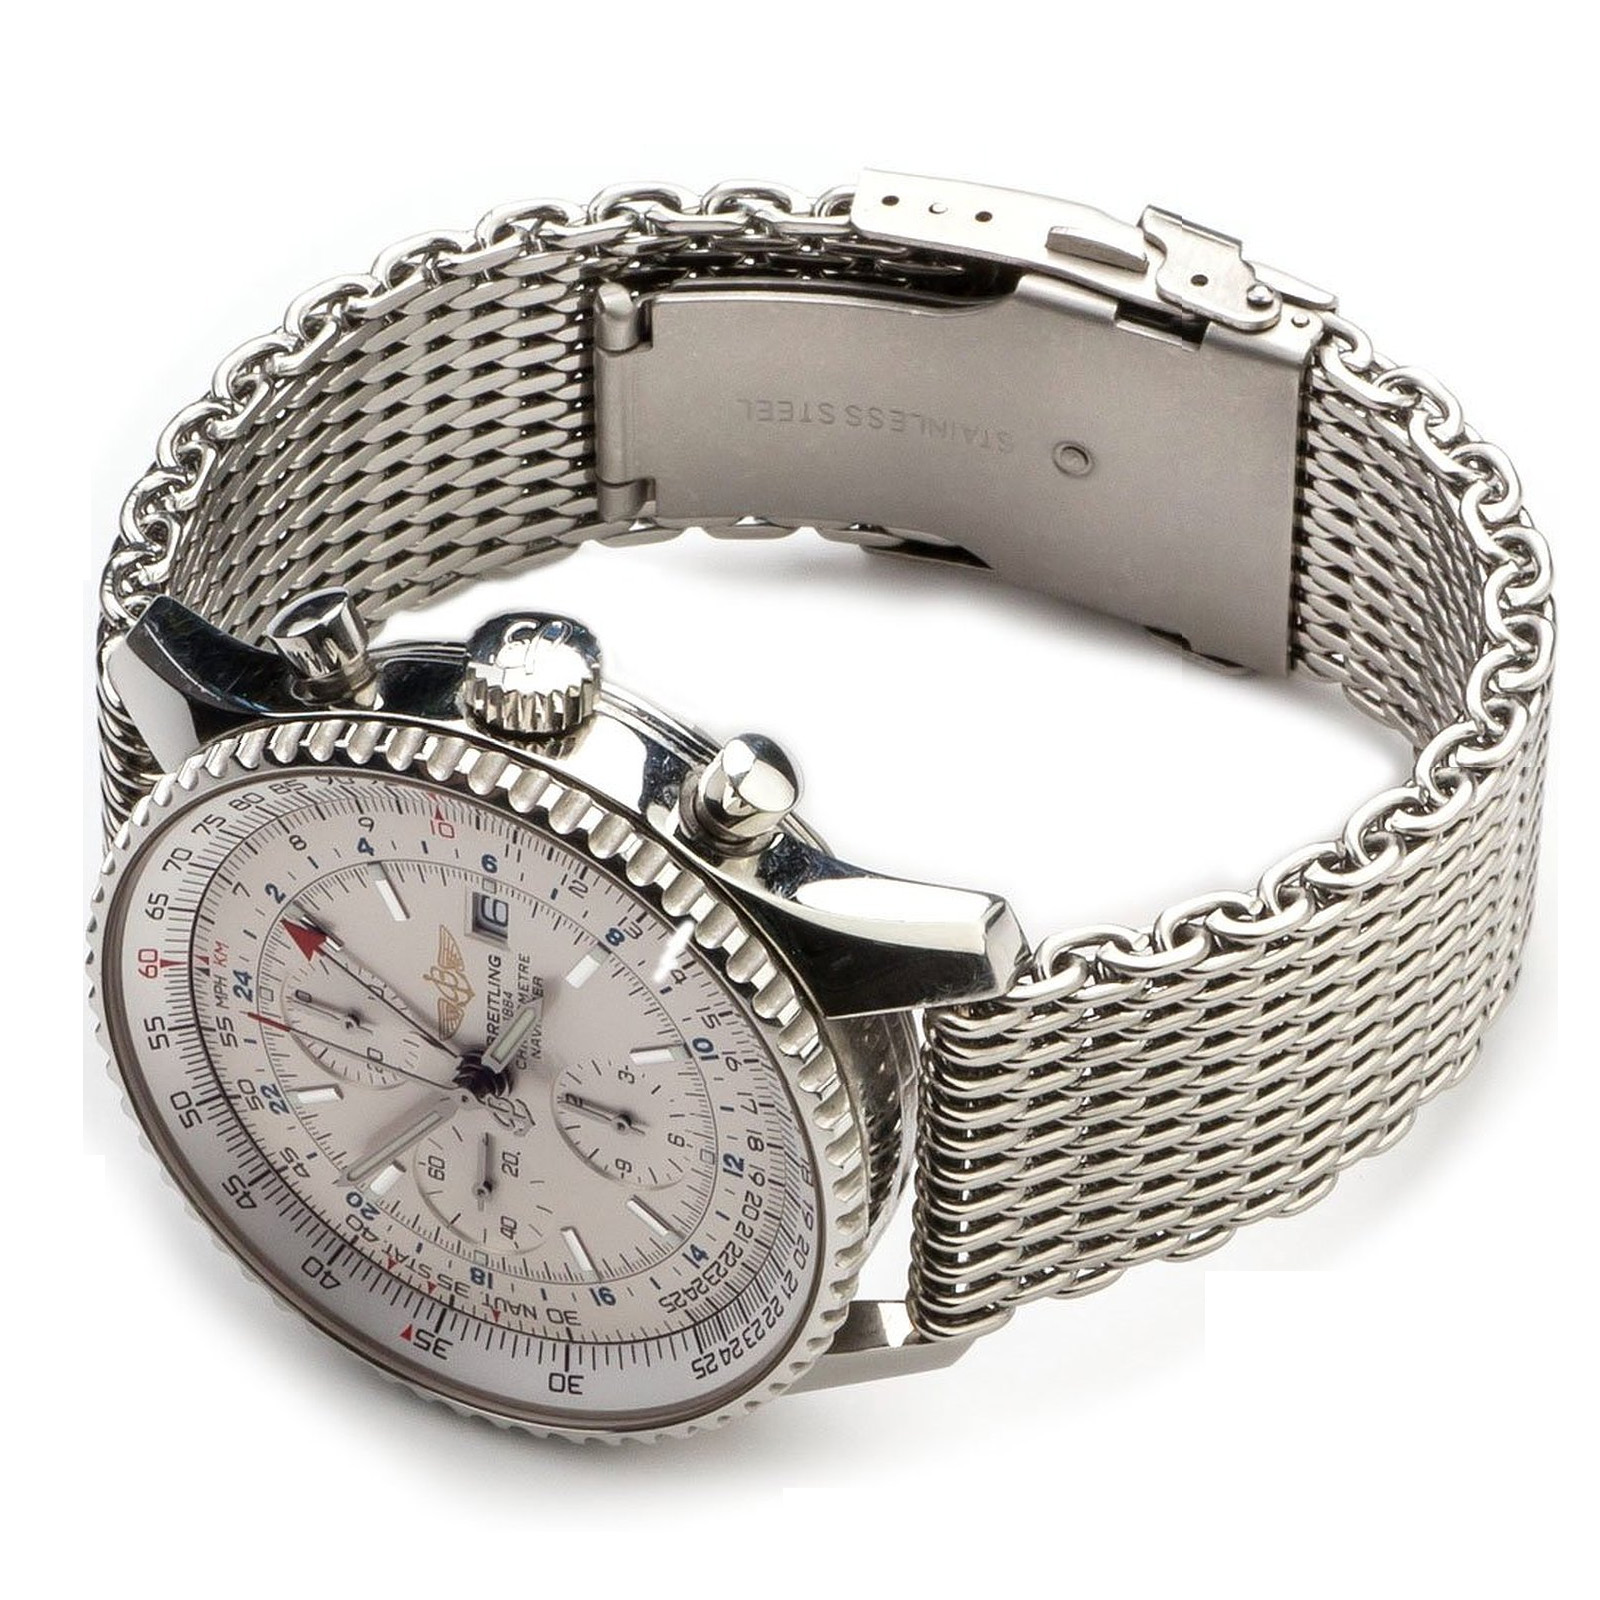 771b17b3252 Stainless Steel Watch Band Strap Push Button Clasp Buckle Bracelet Womens  Mens